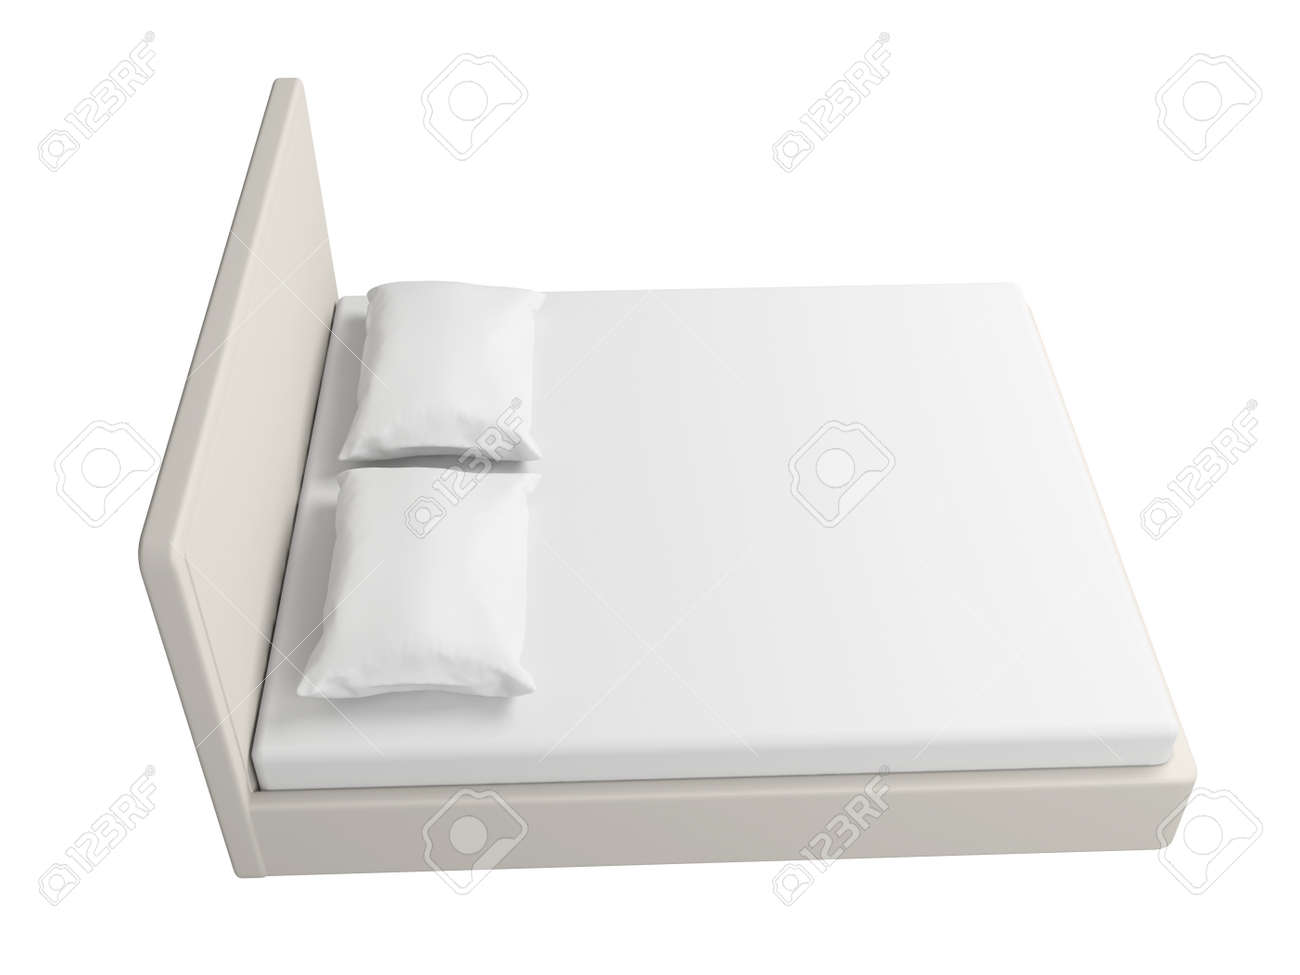 Double bed with a sheet and pillows. Isolated on a white background. Stock Photo - 18593006